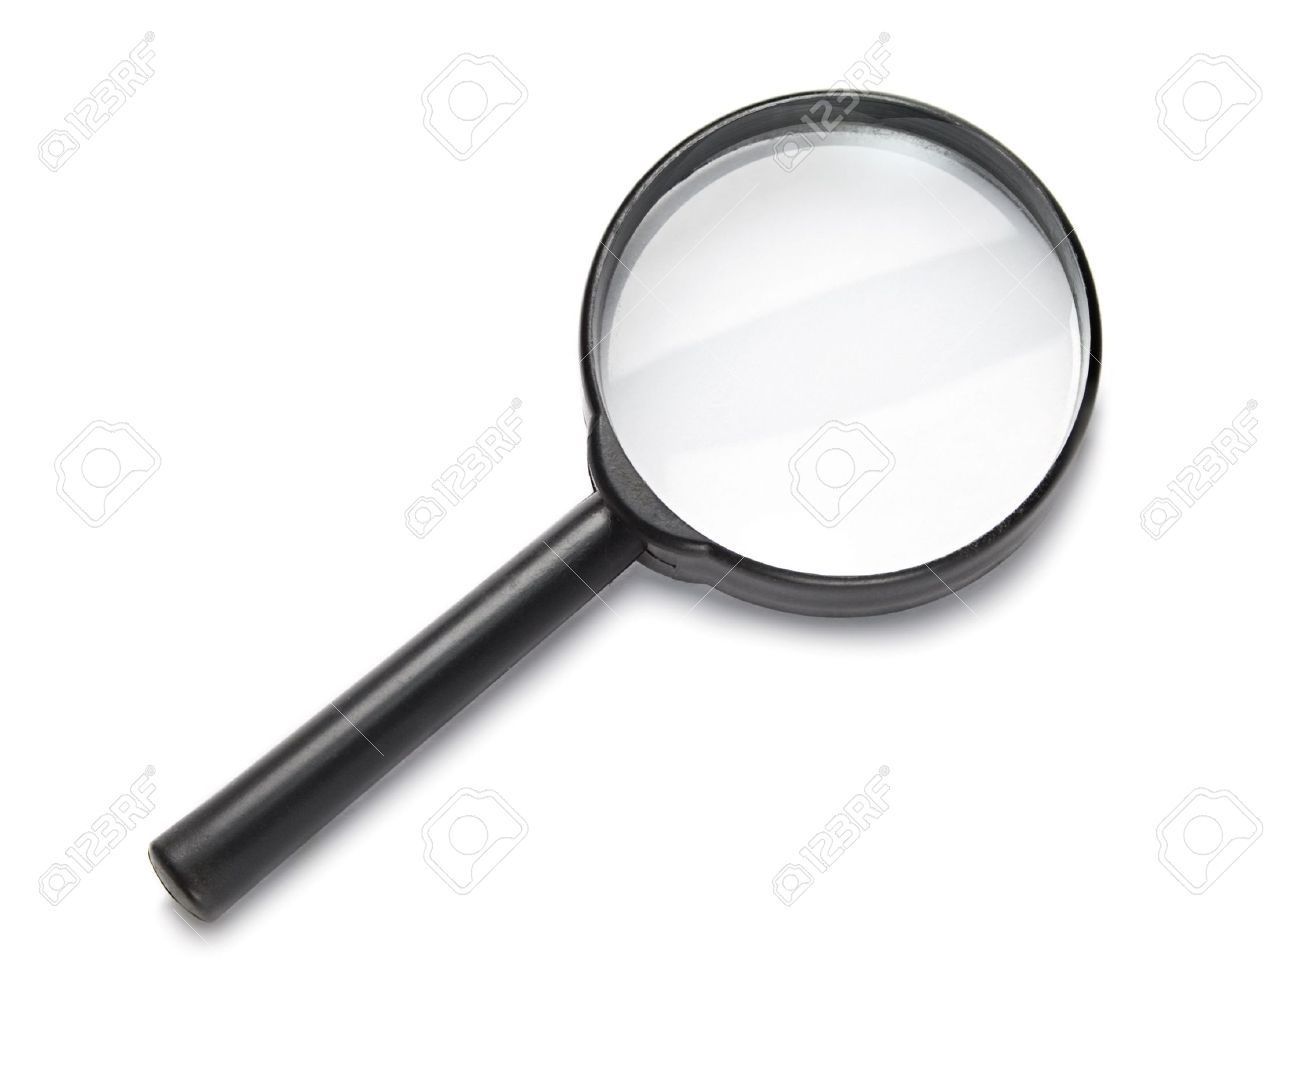 Magnifying glass isolated on the white background. Stock Photo - 6595584